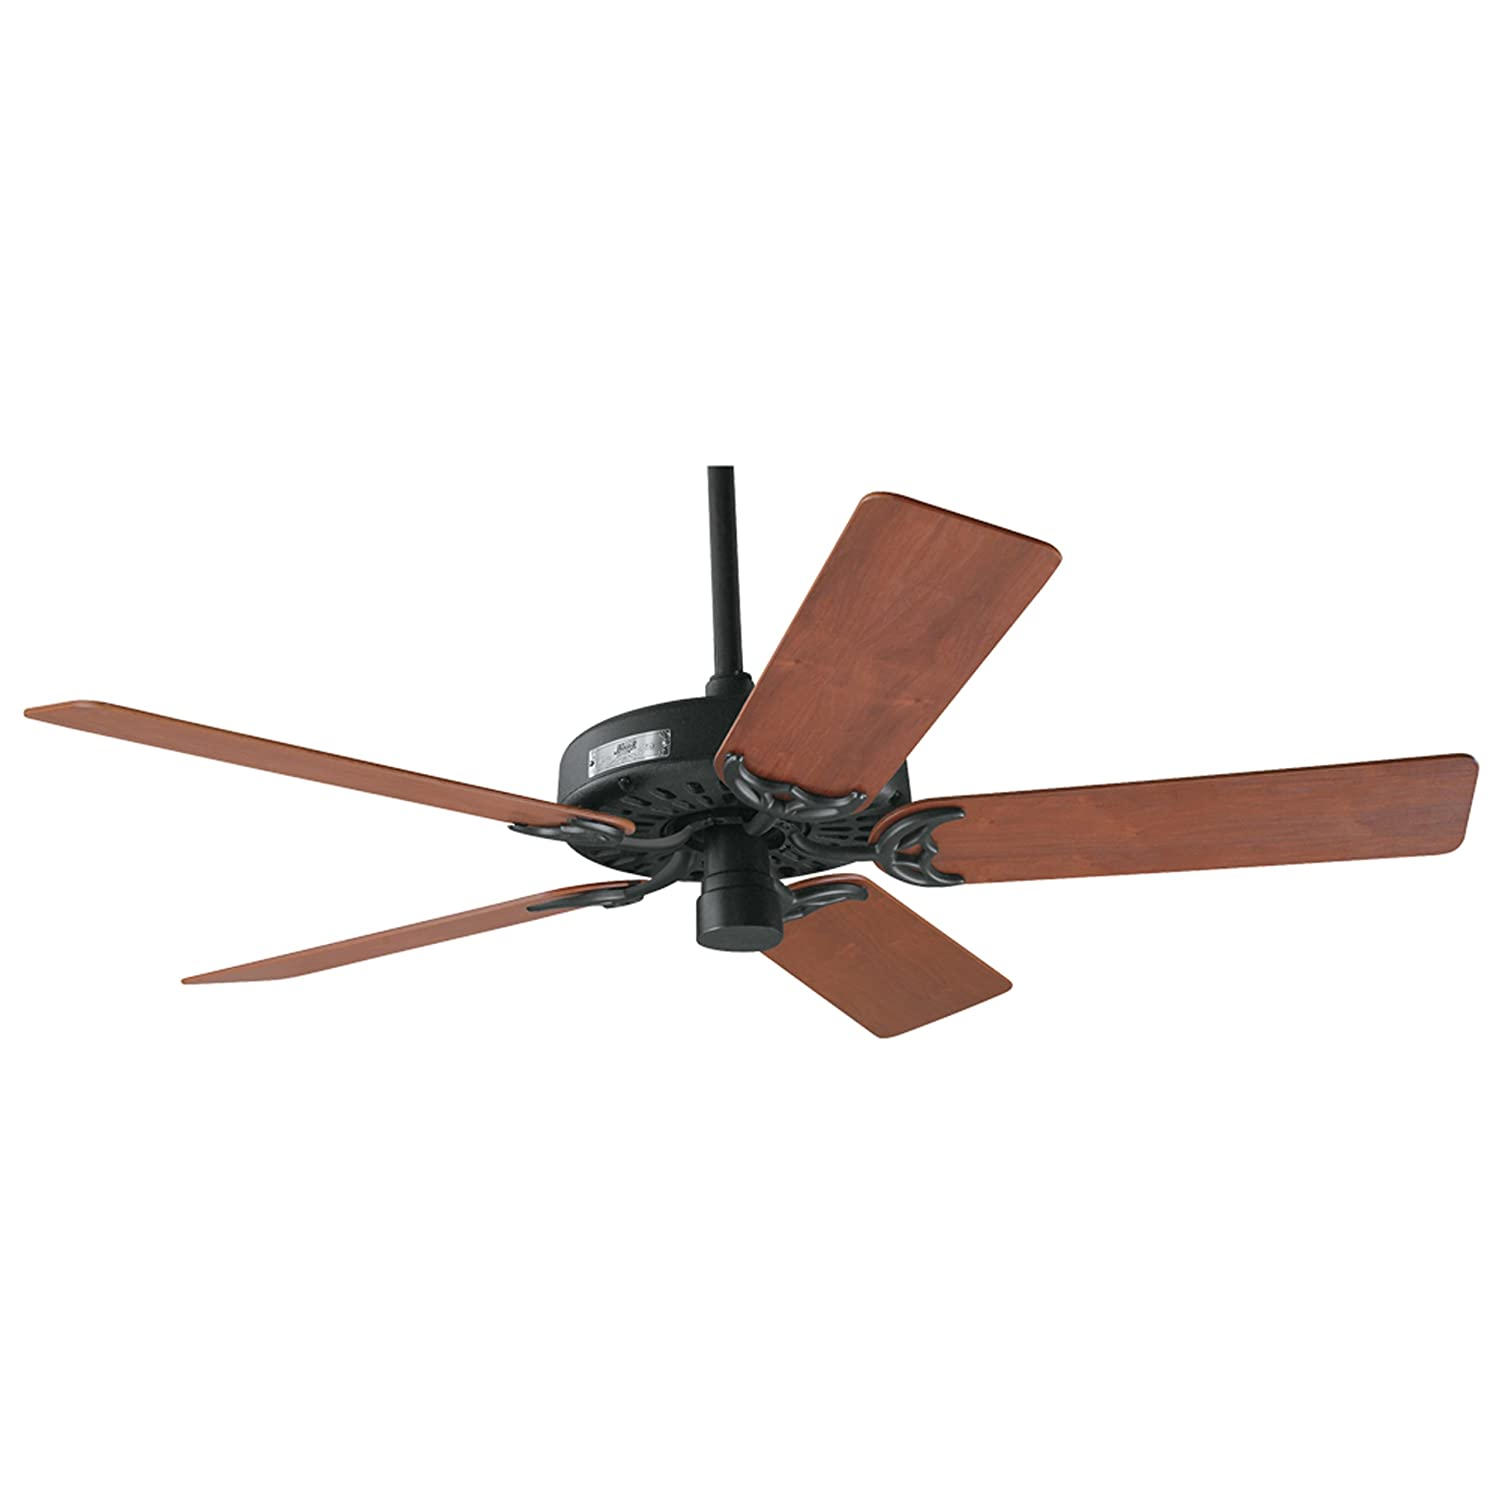 71%2BO7FyAIxL._SL1500_ hunter 23855 prestige classic original 52 inch 3 speed ceiling fan  at cos-gaming.co